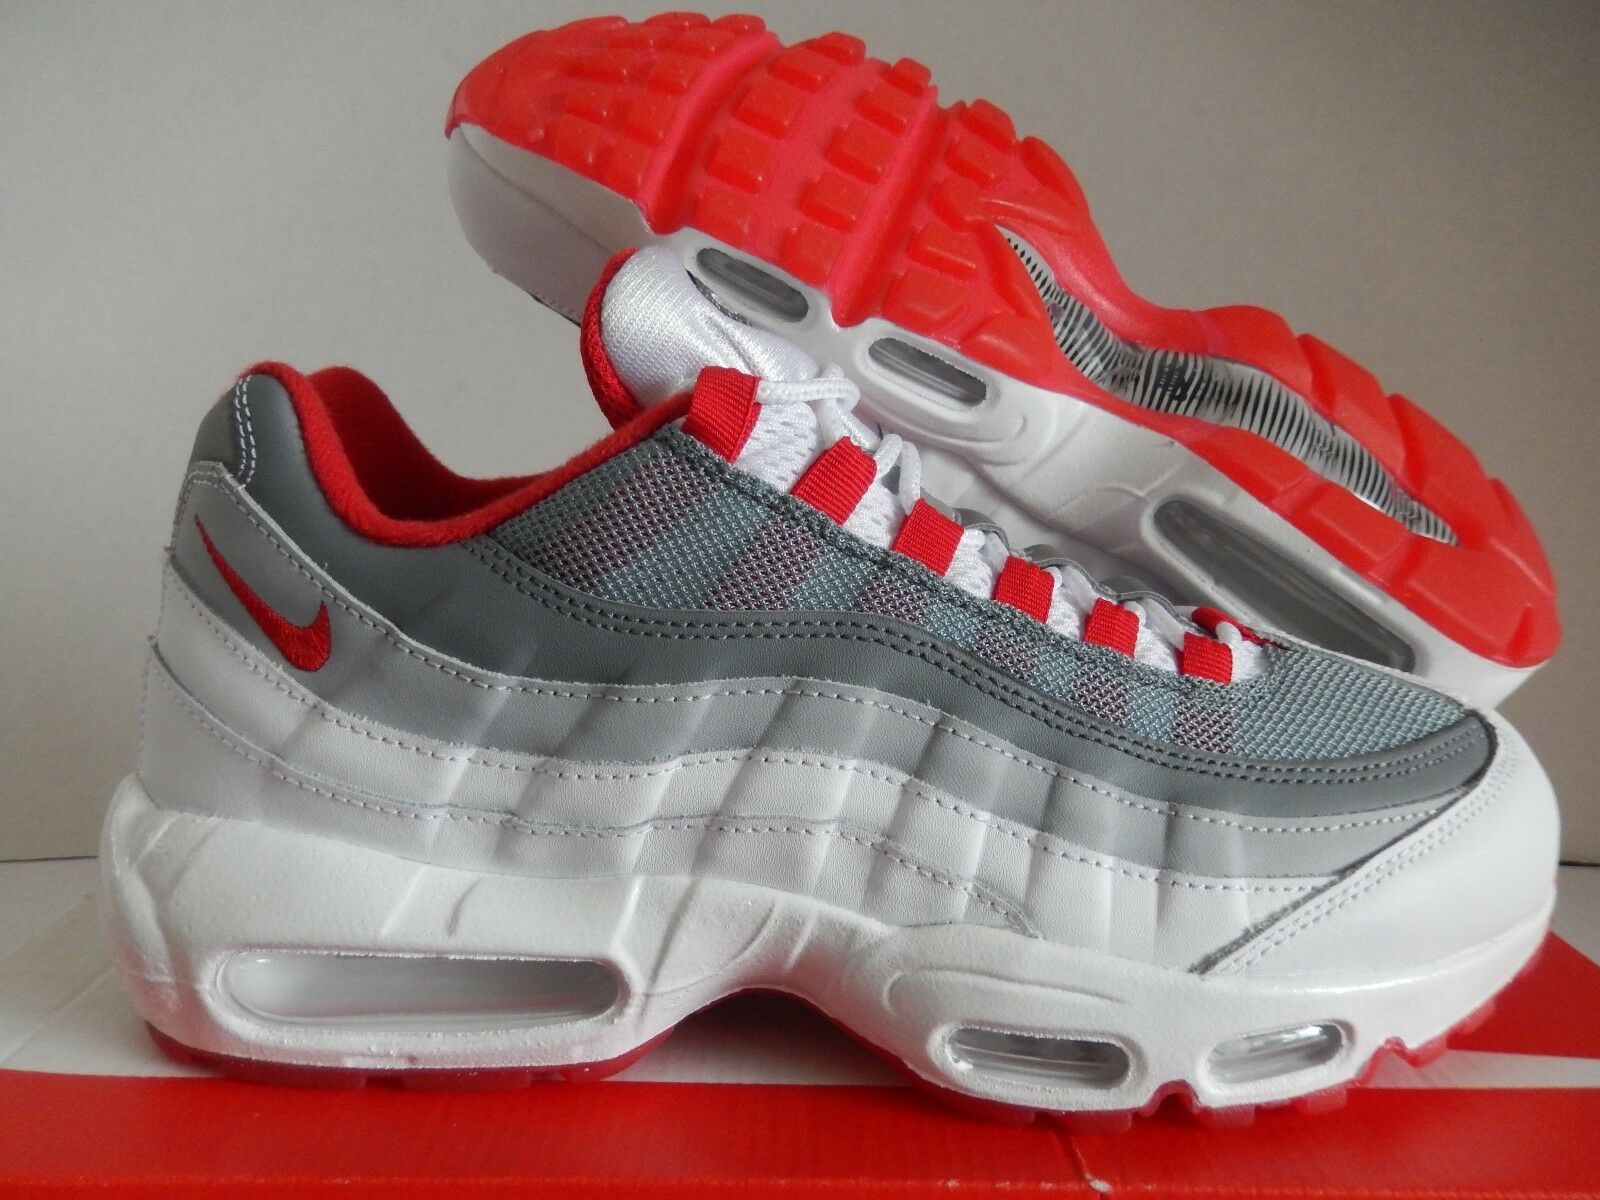 Nike air max 95 id white-grey-red sz - 818592-995]